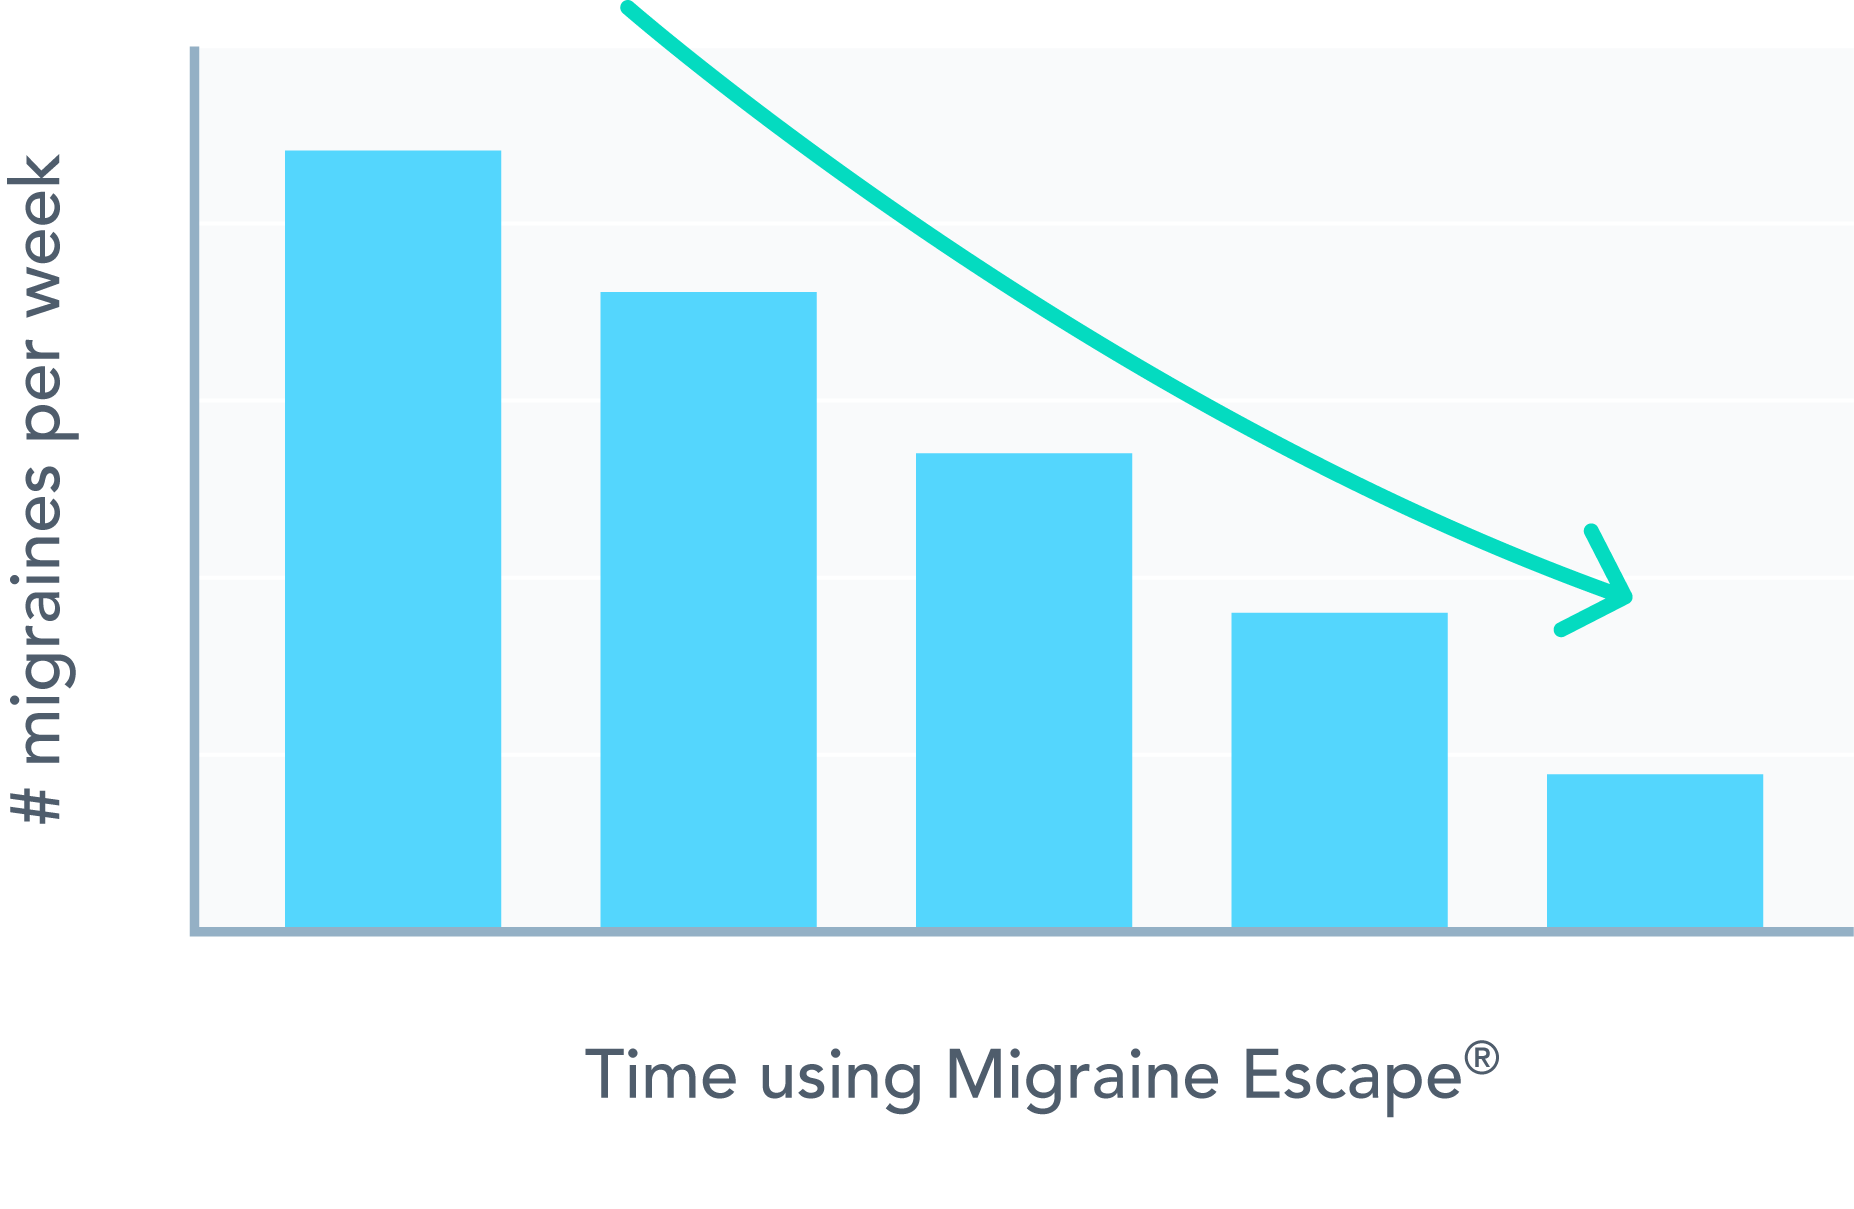 Migraine Escape over time